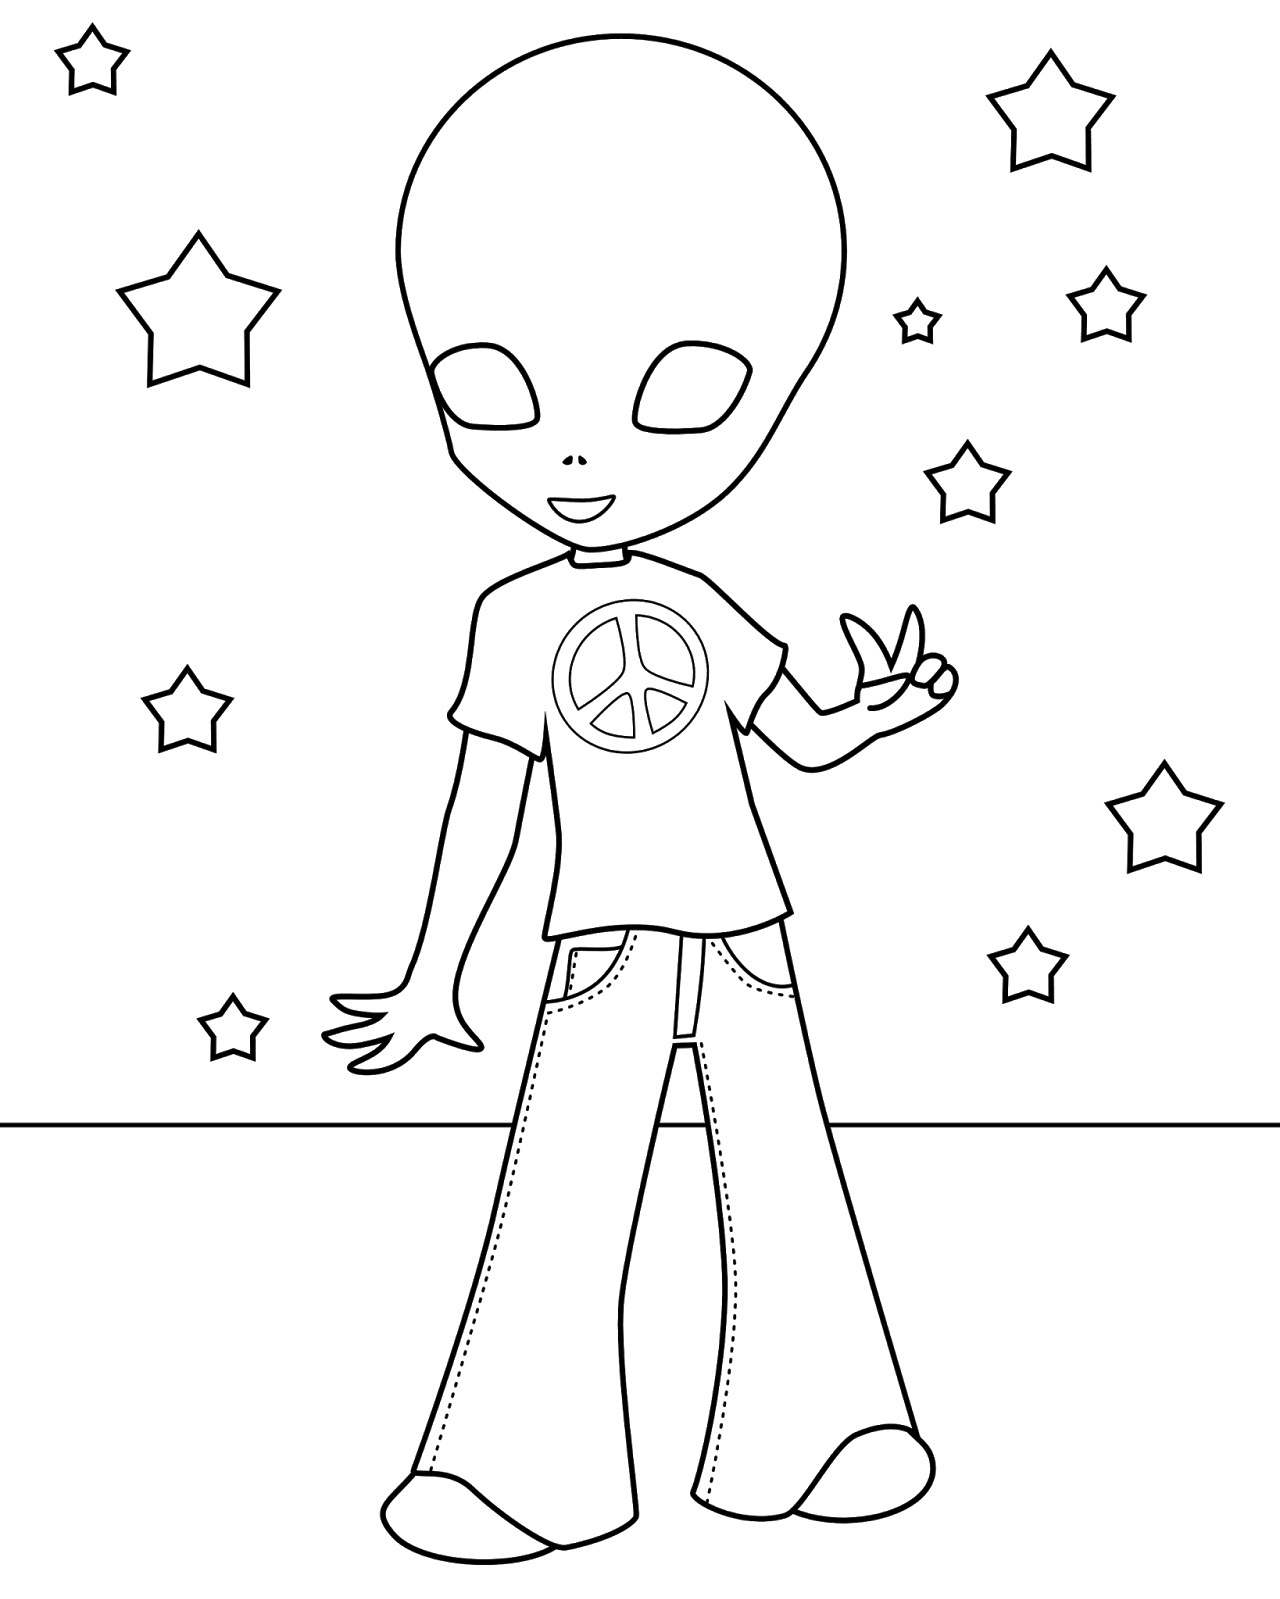 alien pictures for kids to color